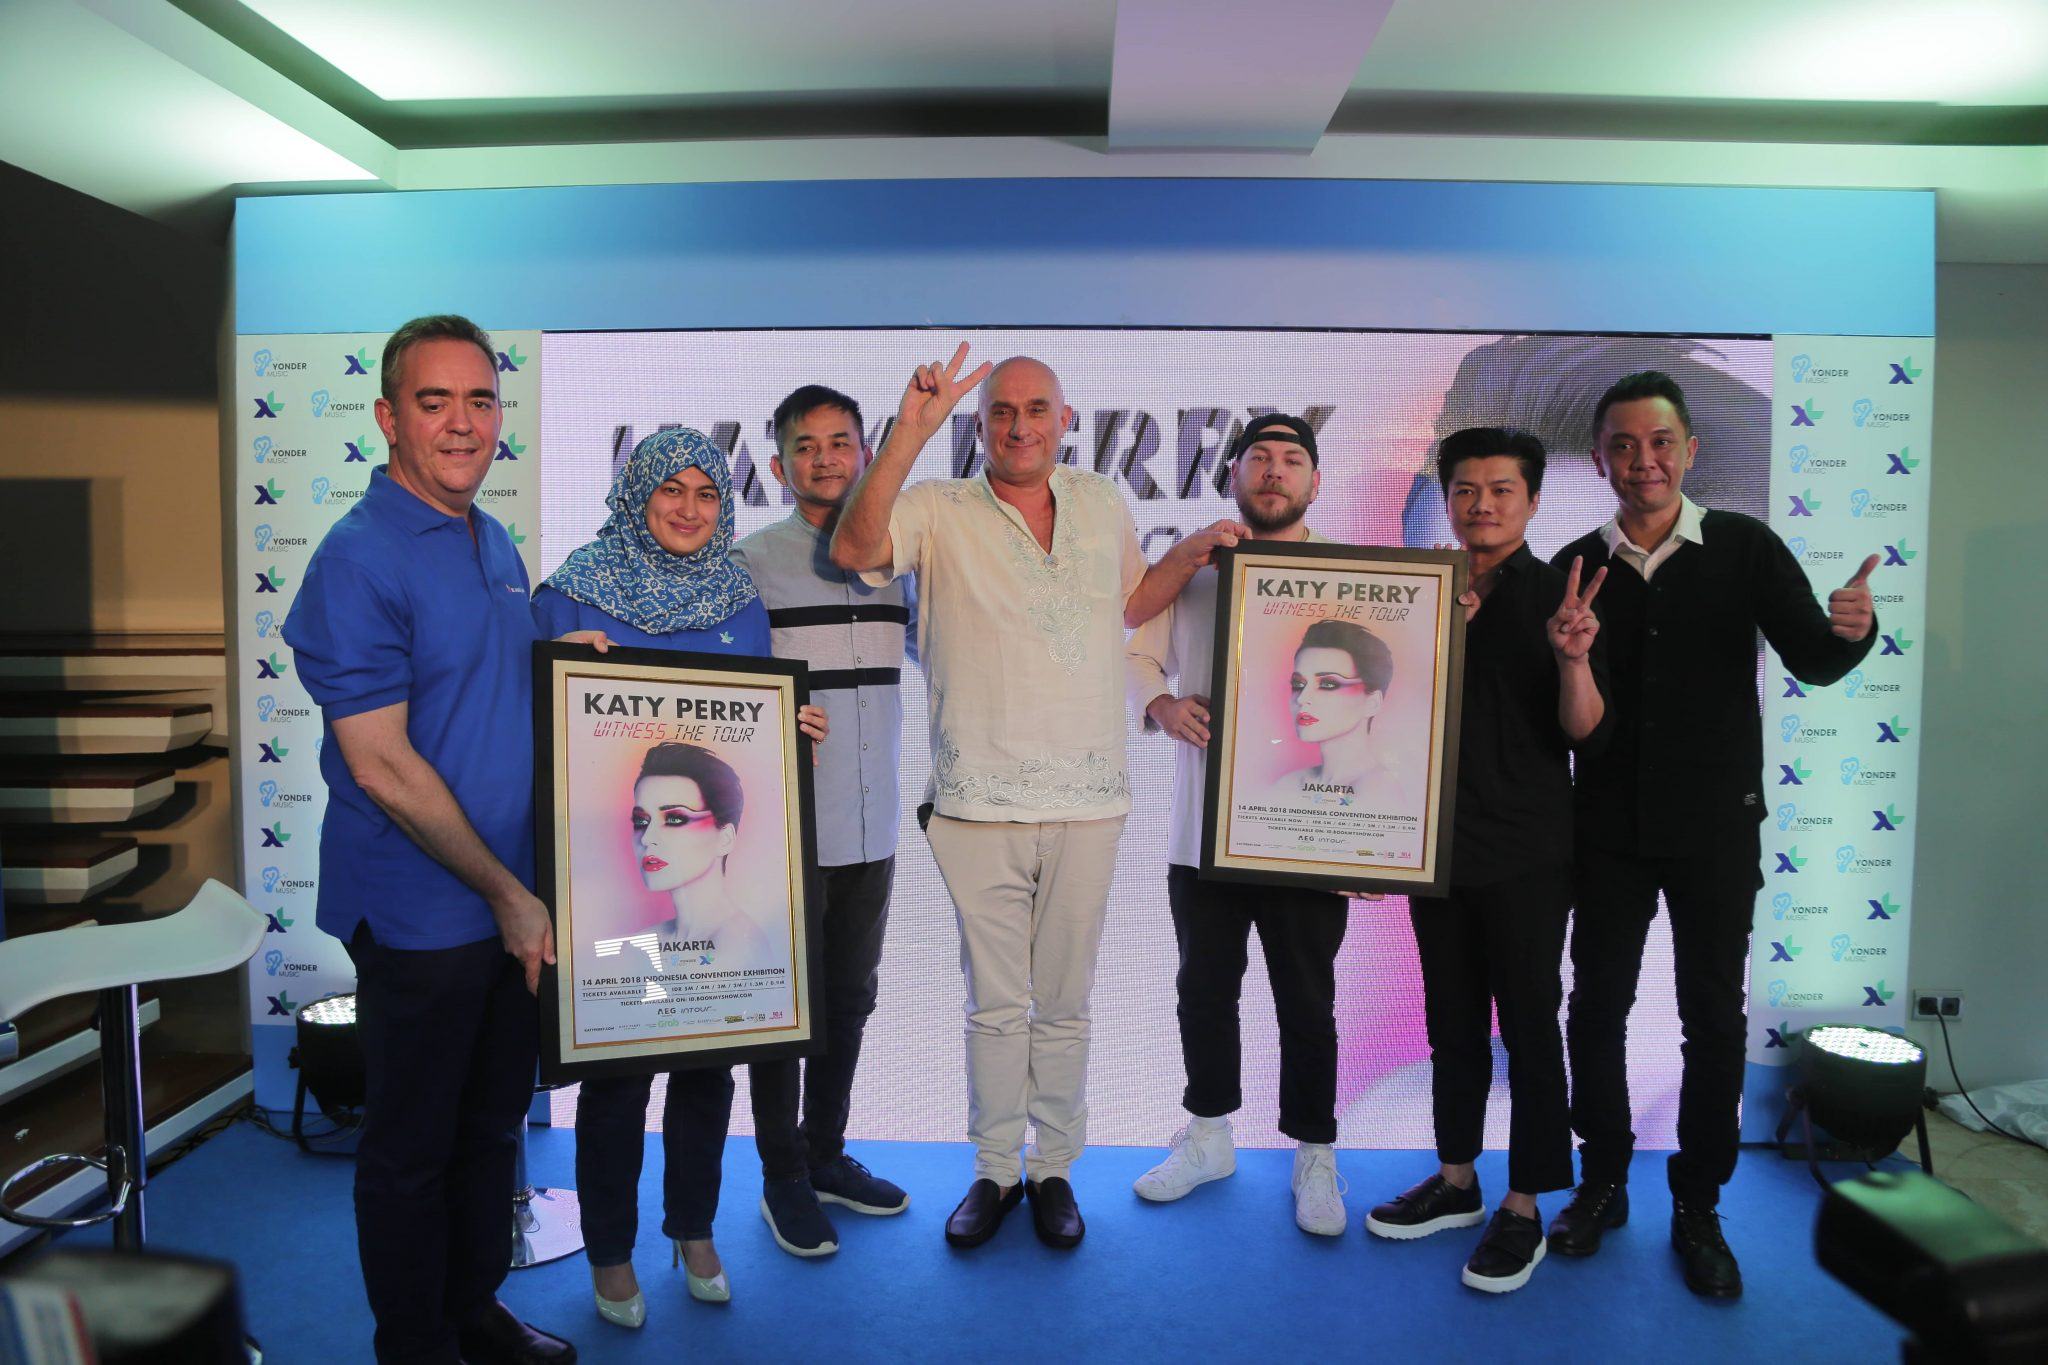 Yonder Music and XL Axiata are Supports The Concert of Katy